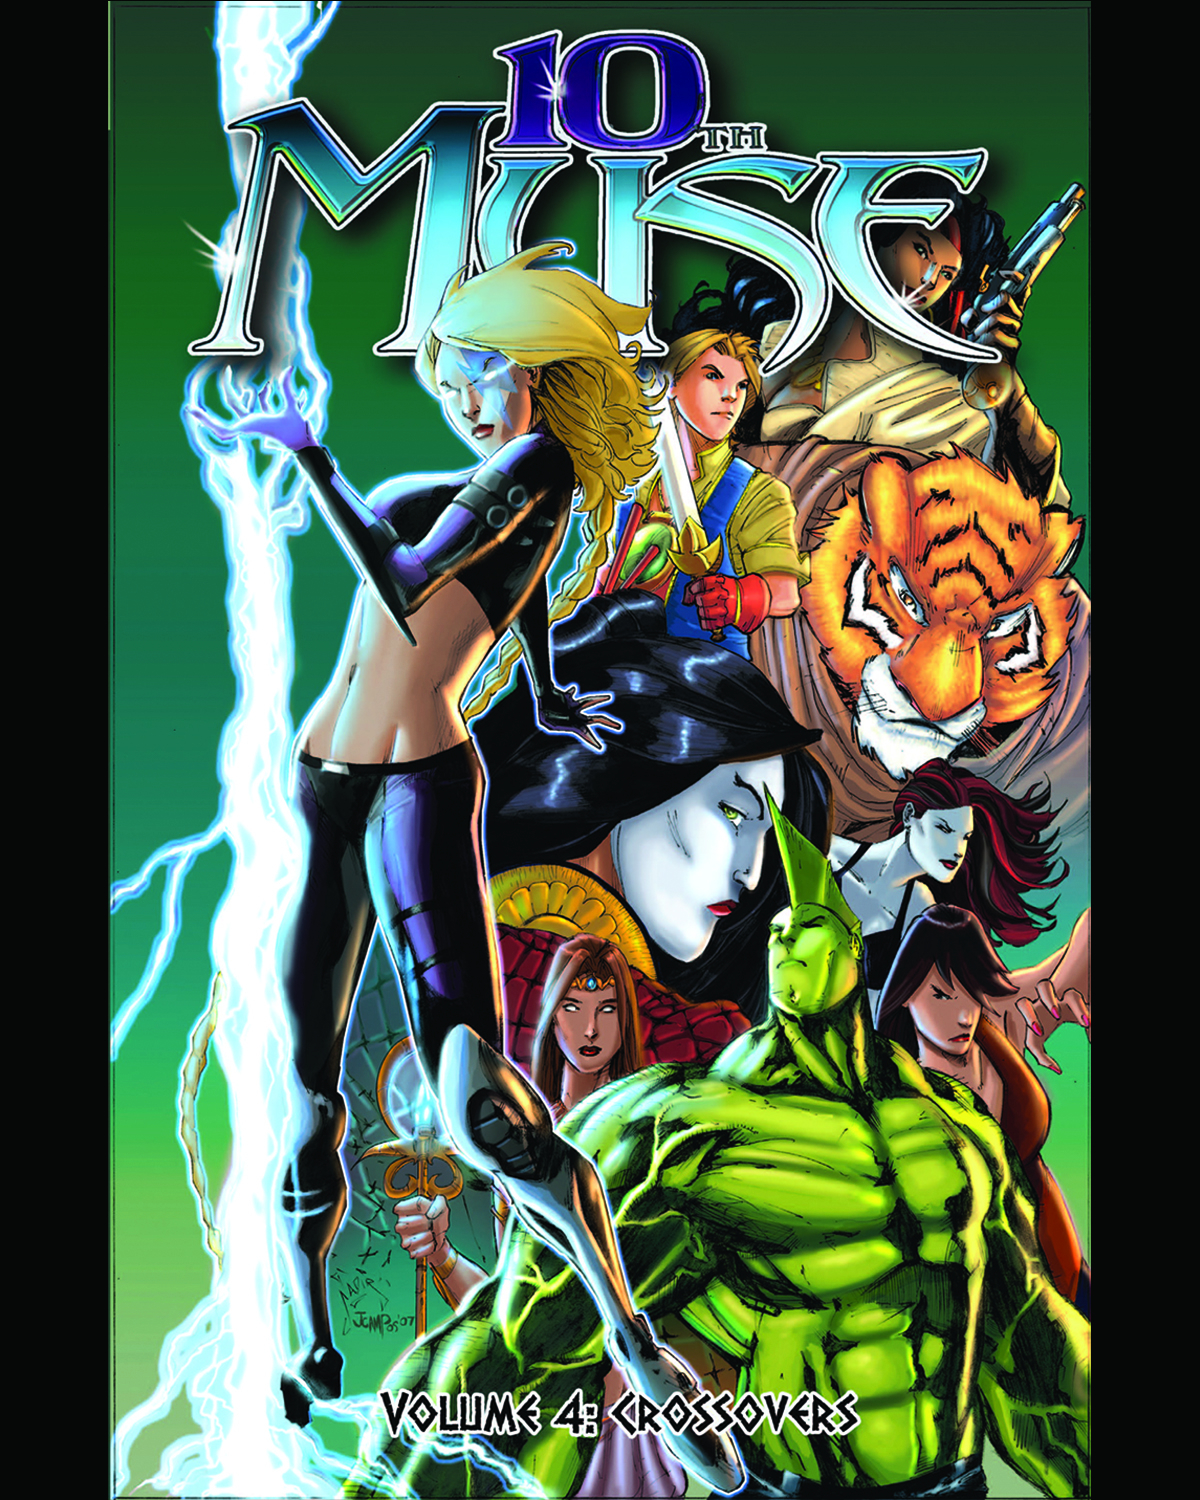 10TH MUSE TP VOL 04 CROSSOVERS